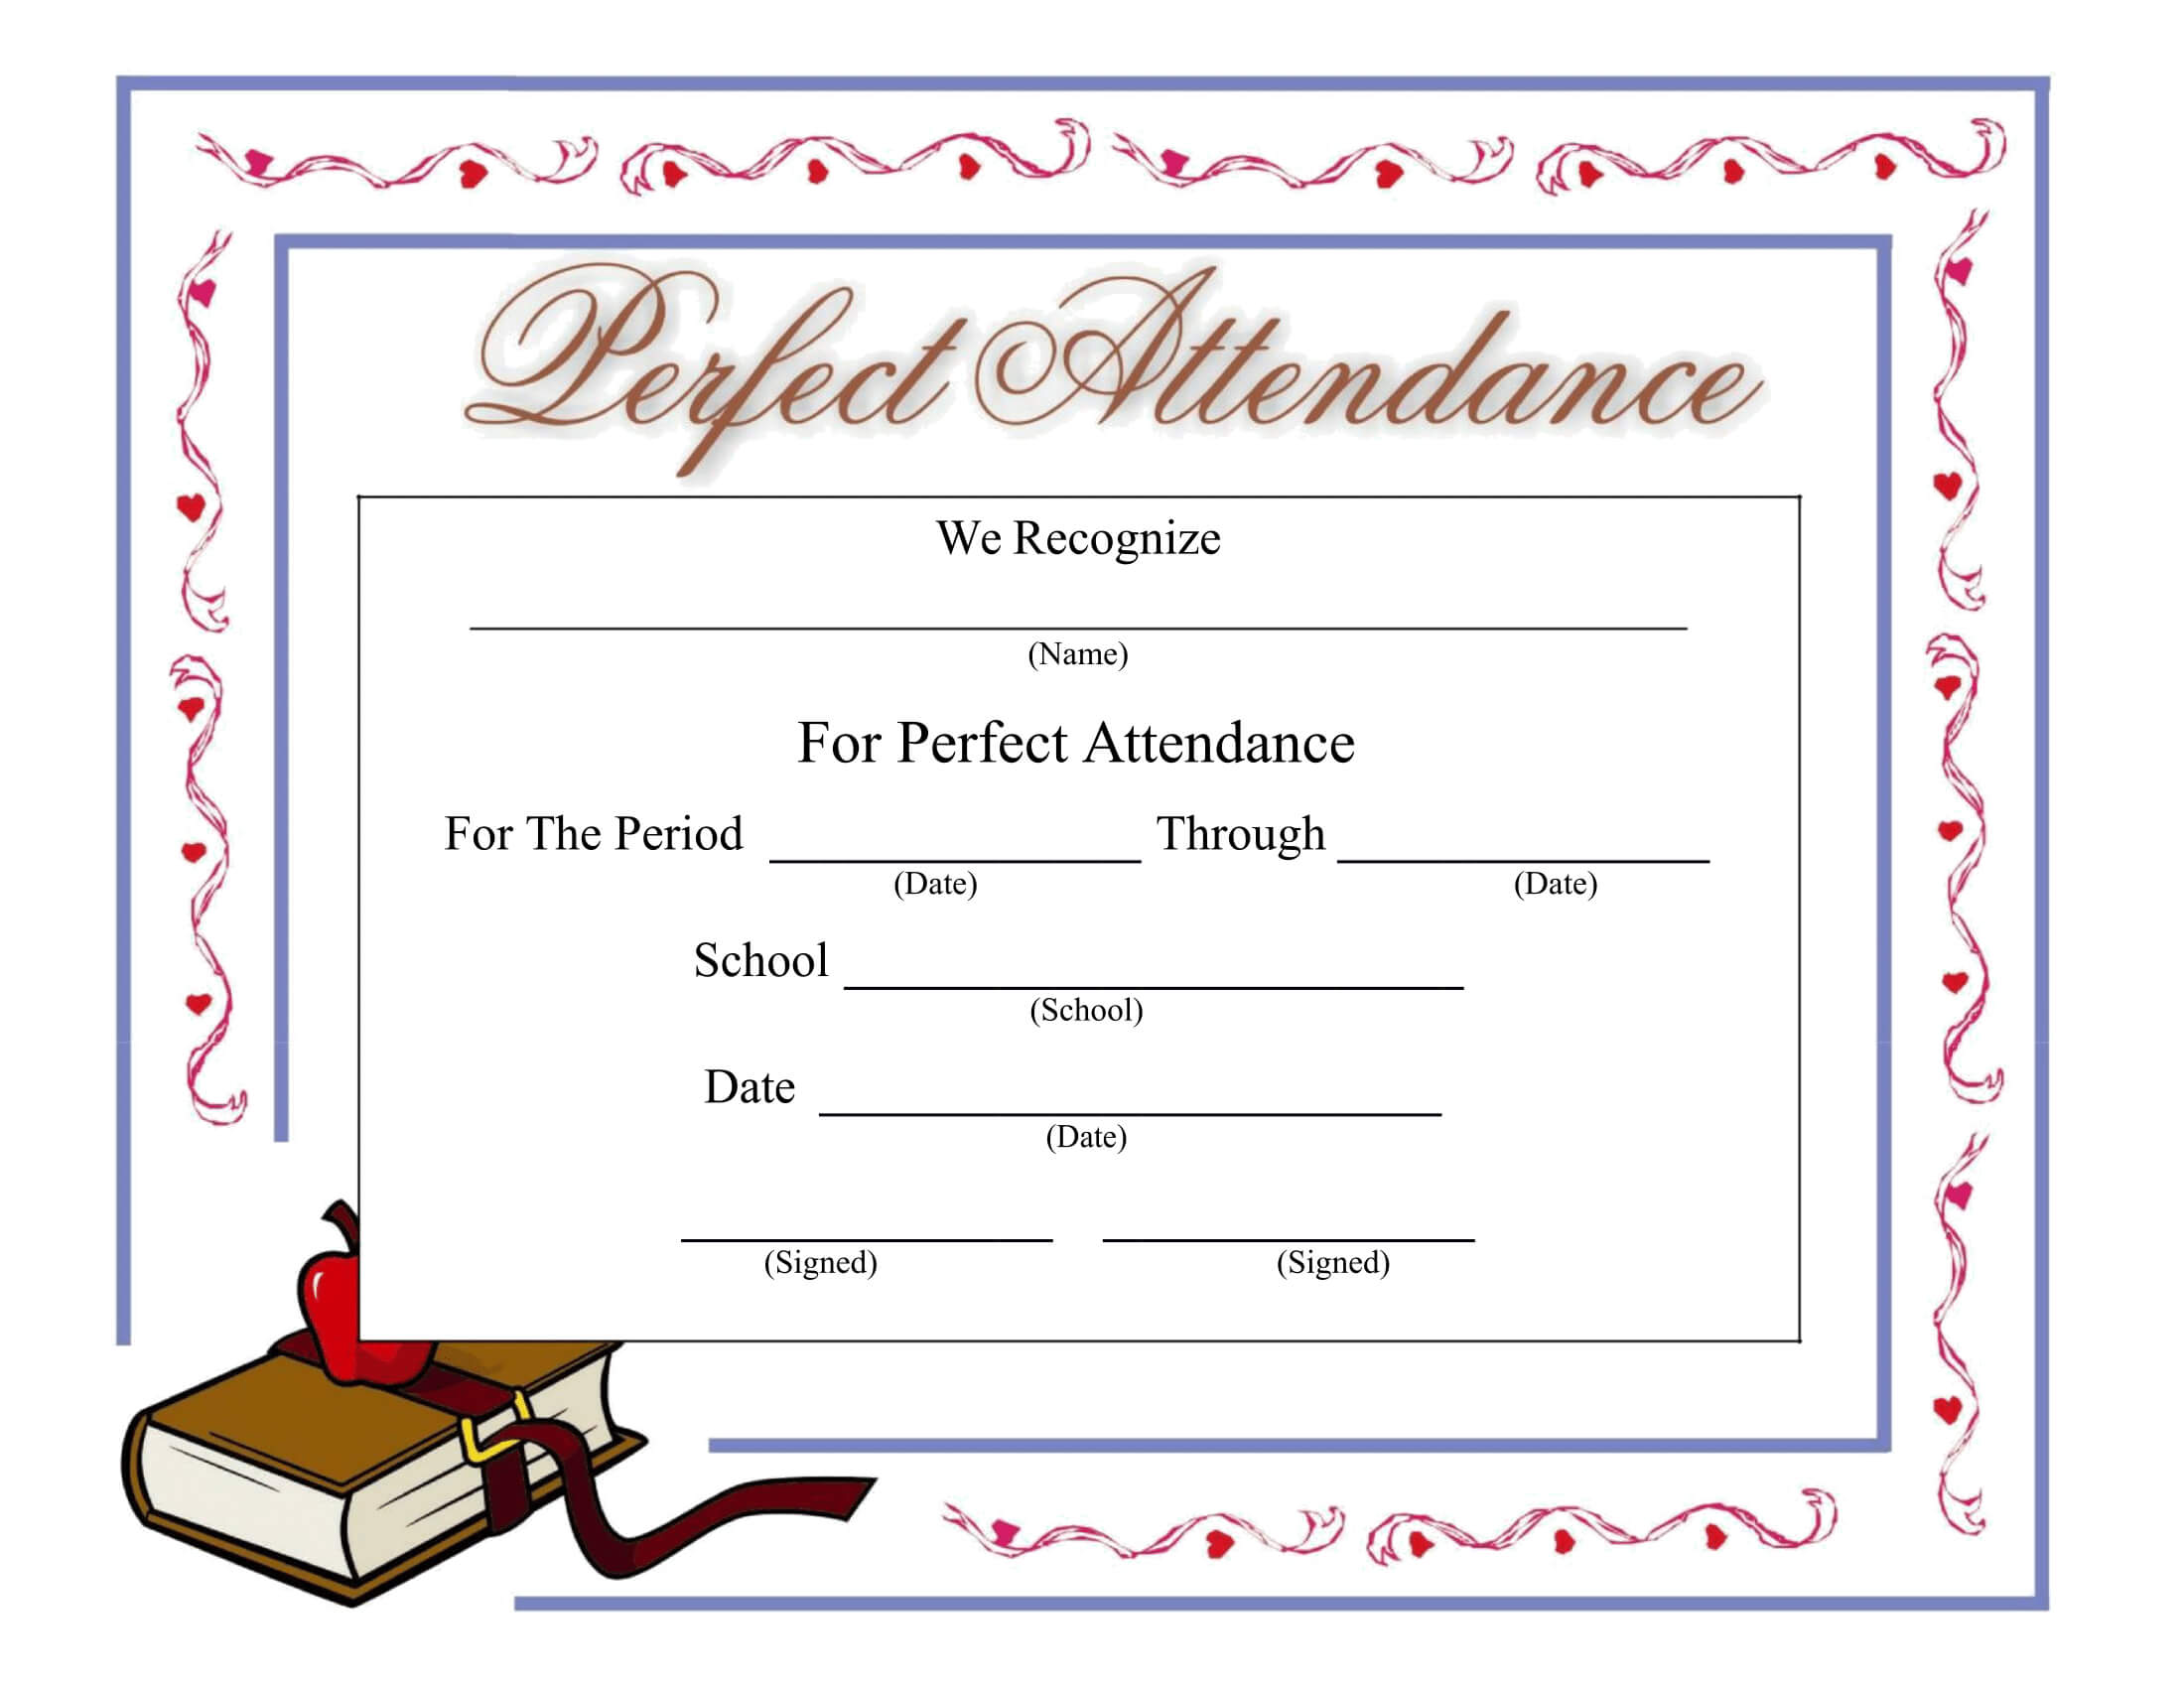 Perfect Attendance Certificate - Download A Free Template pertaining to Perfect Attendance Certificate Free Template